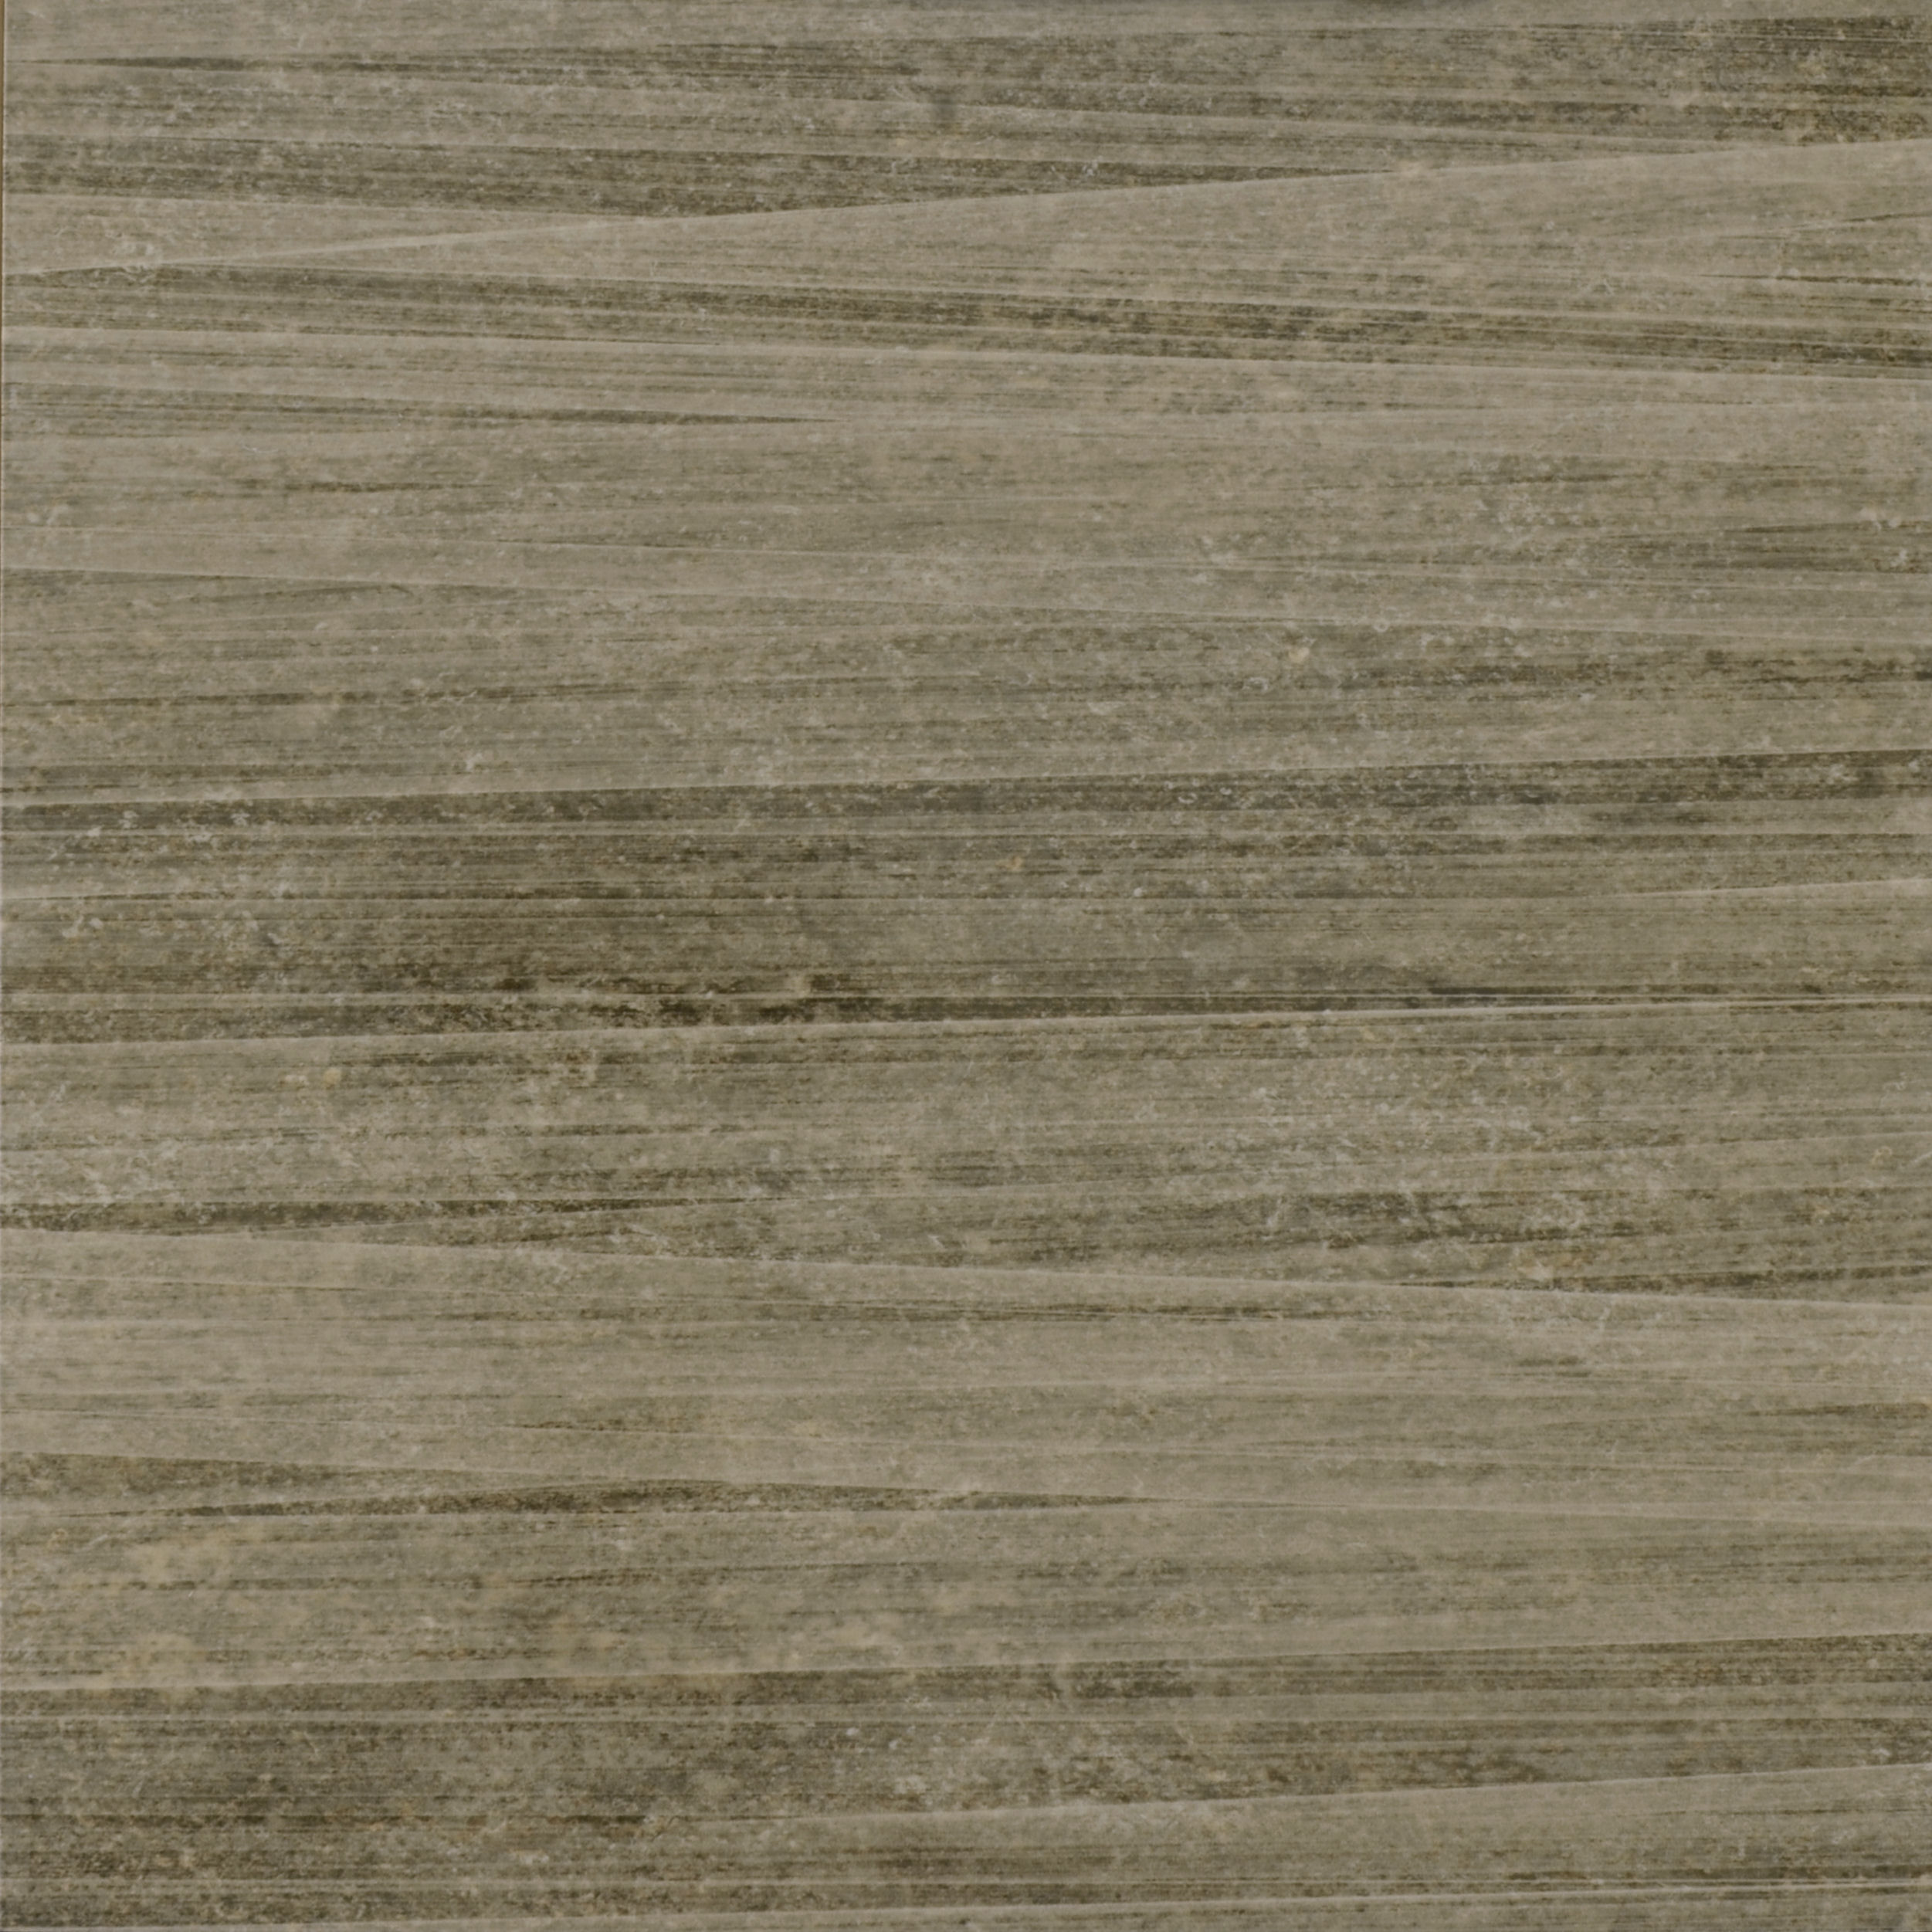 Ridgeway Brown Floor 447mm x 447mm